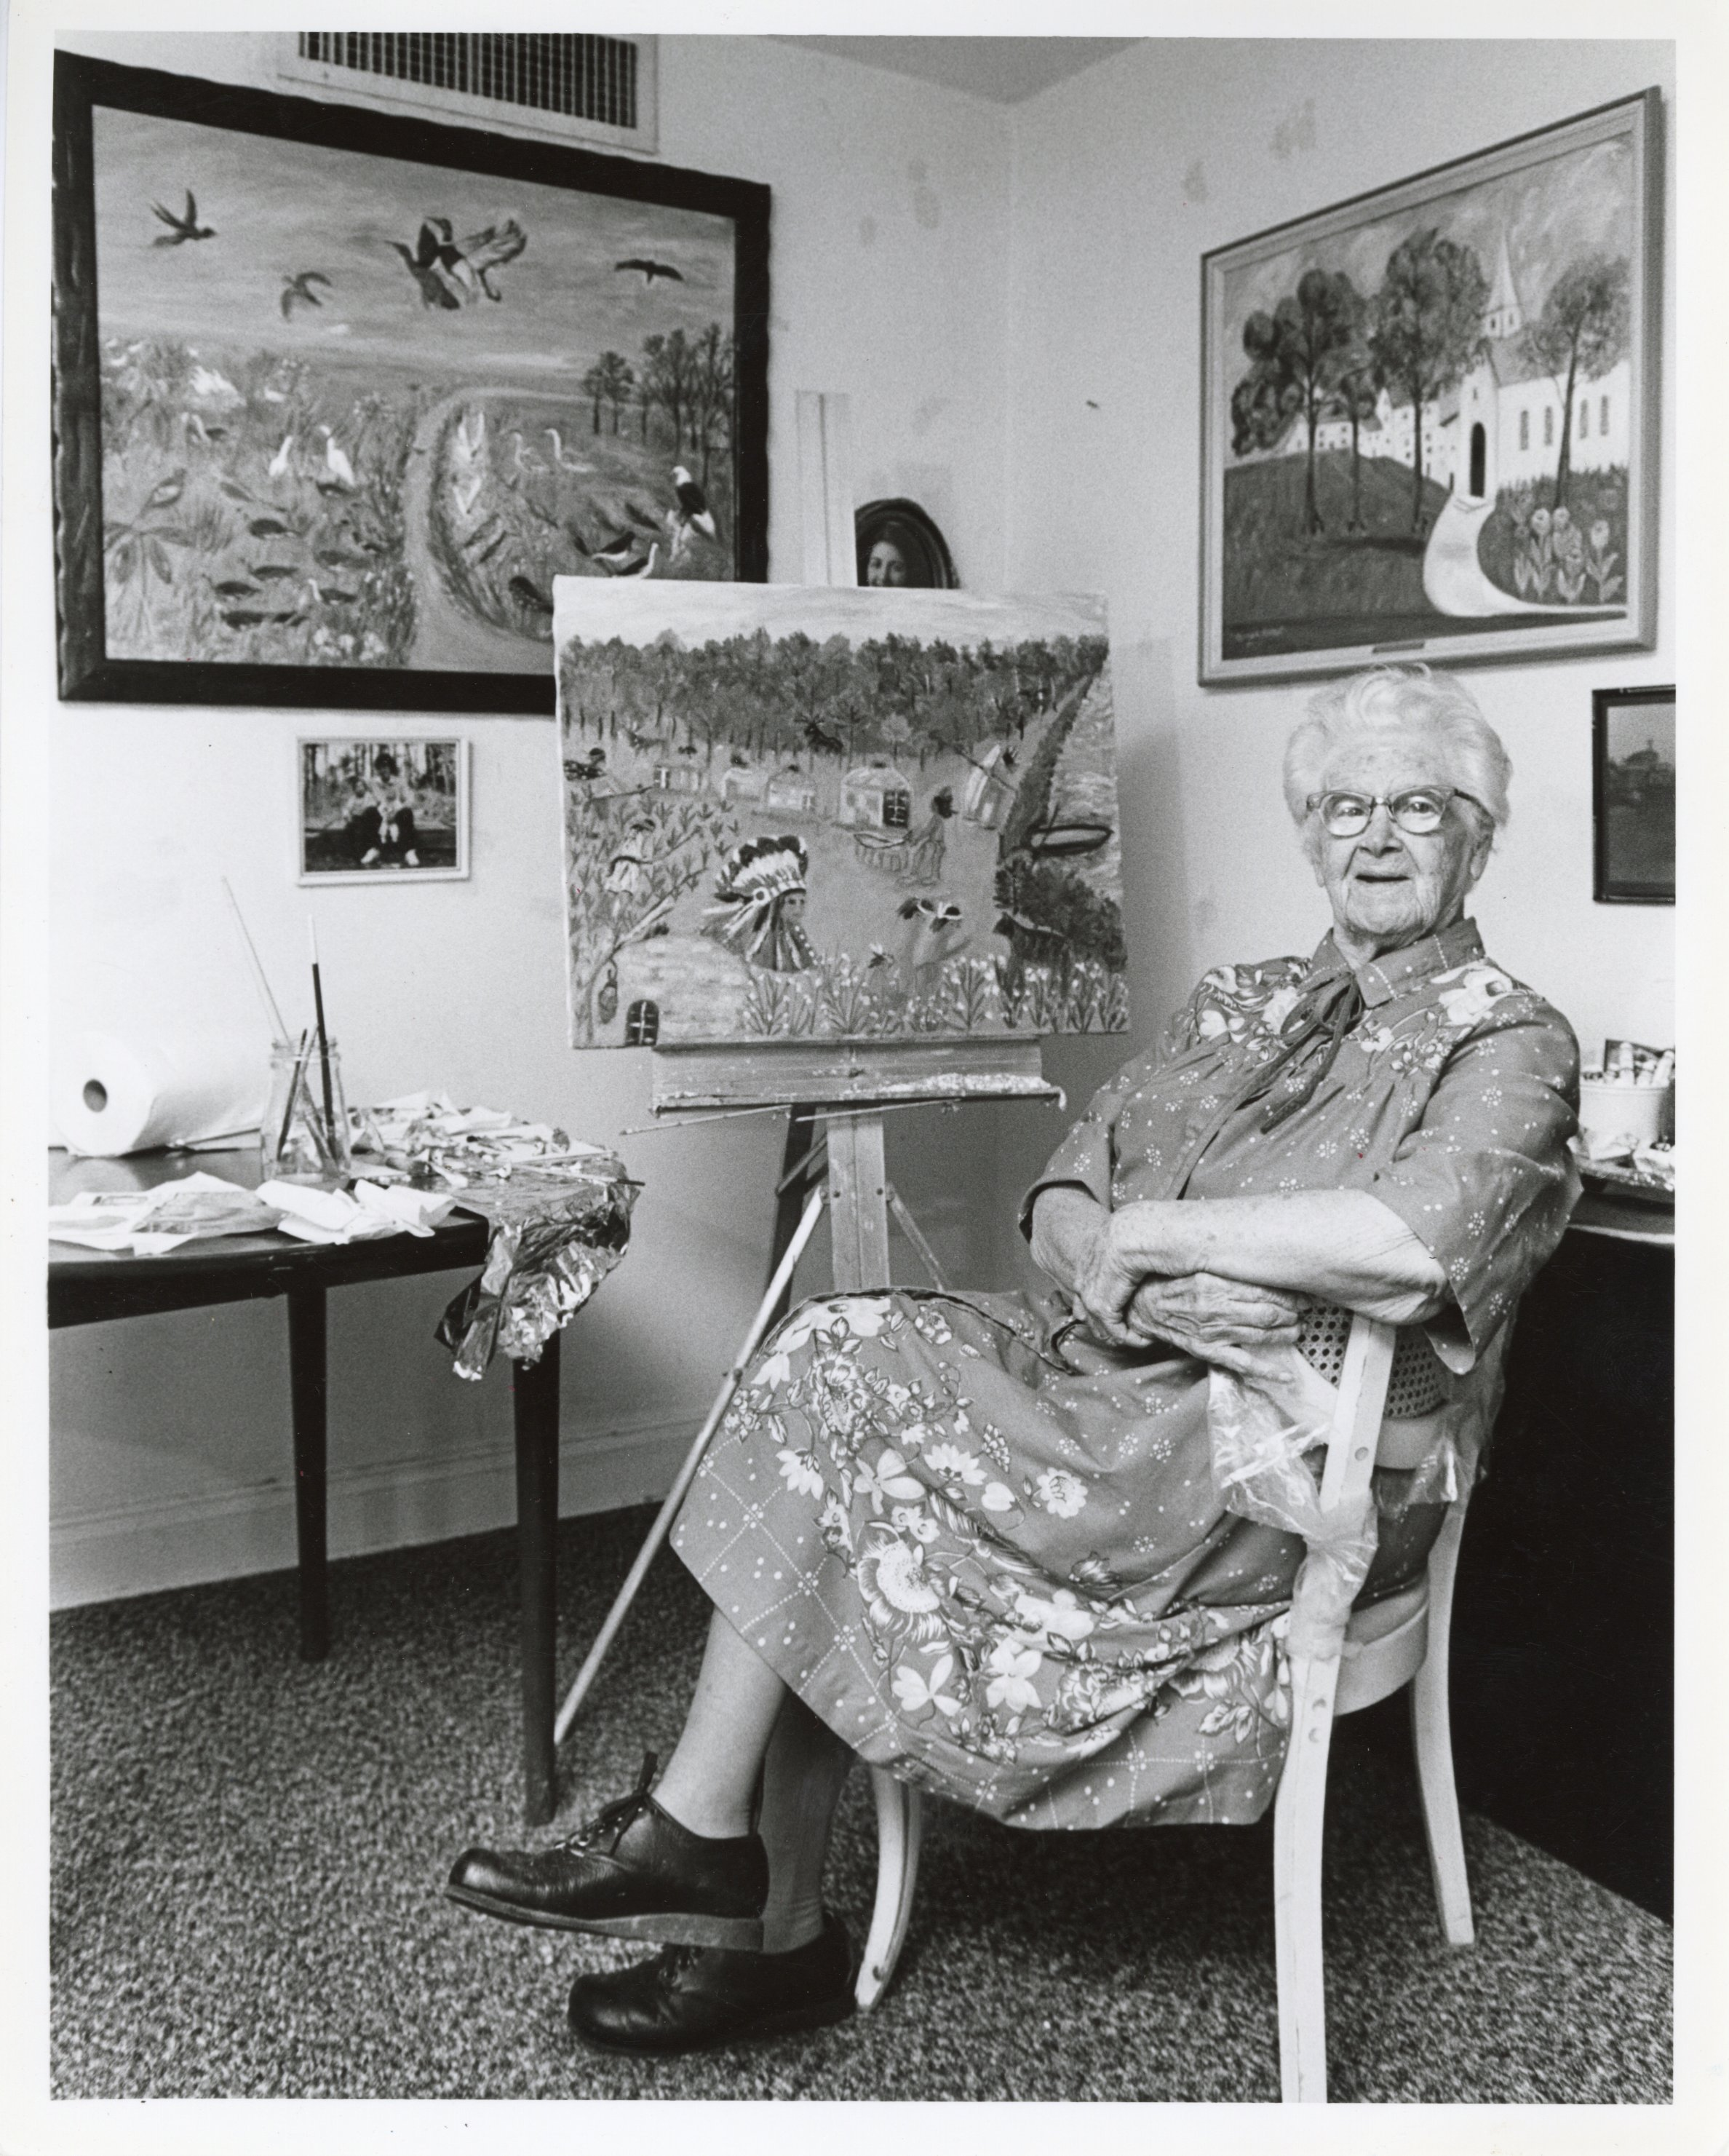 older woman sitting in a chair in front of several pieces of art depicting agricultural scenes